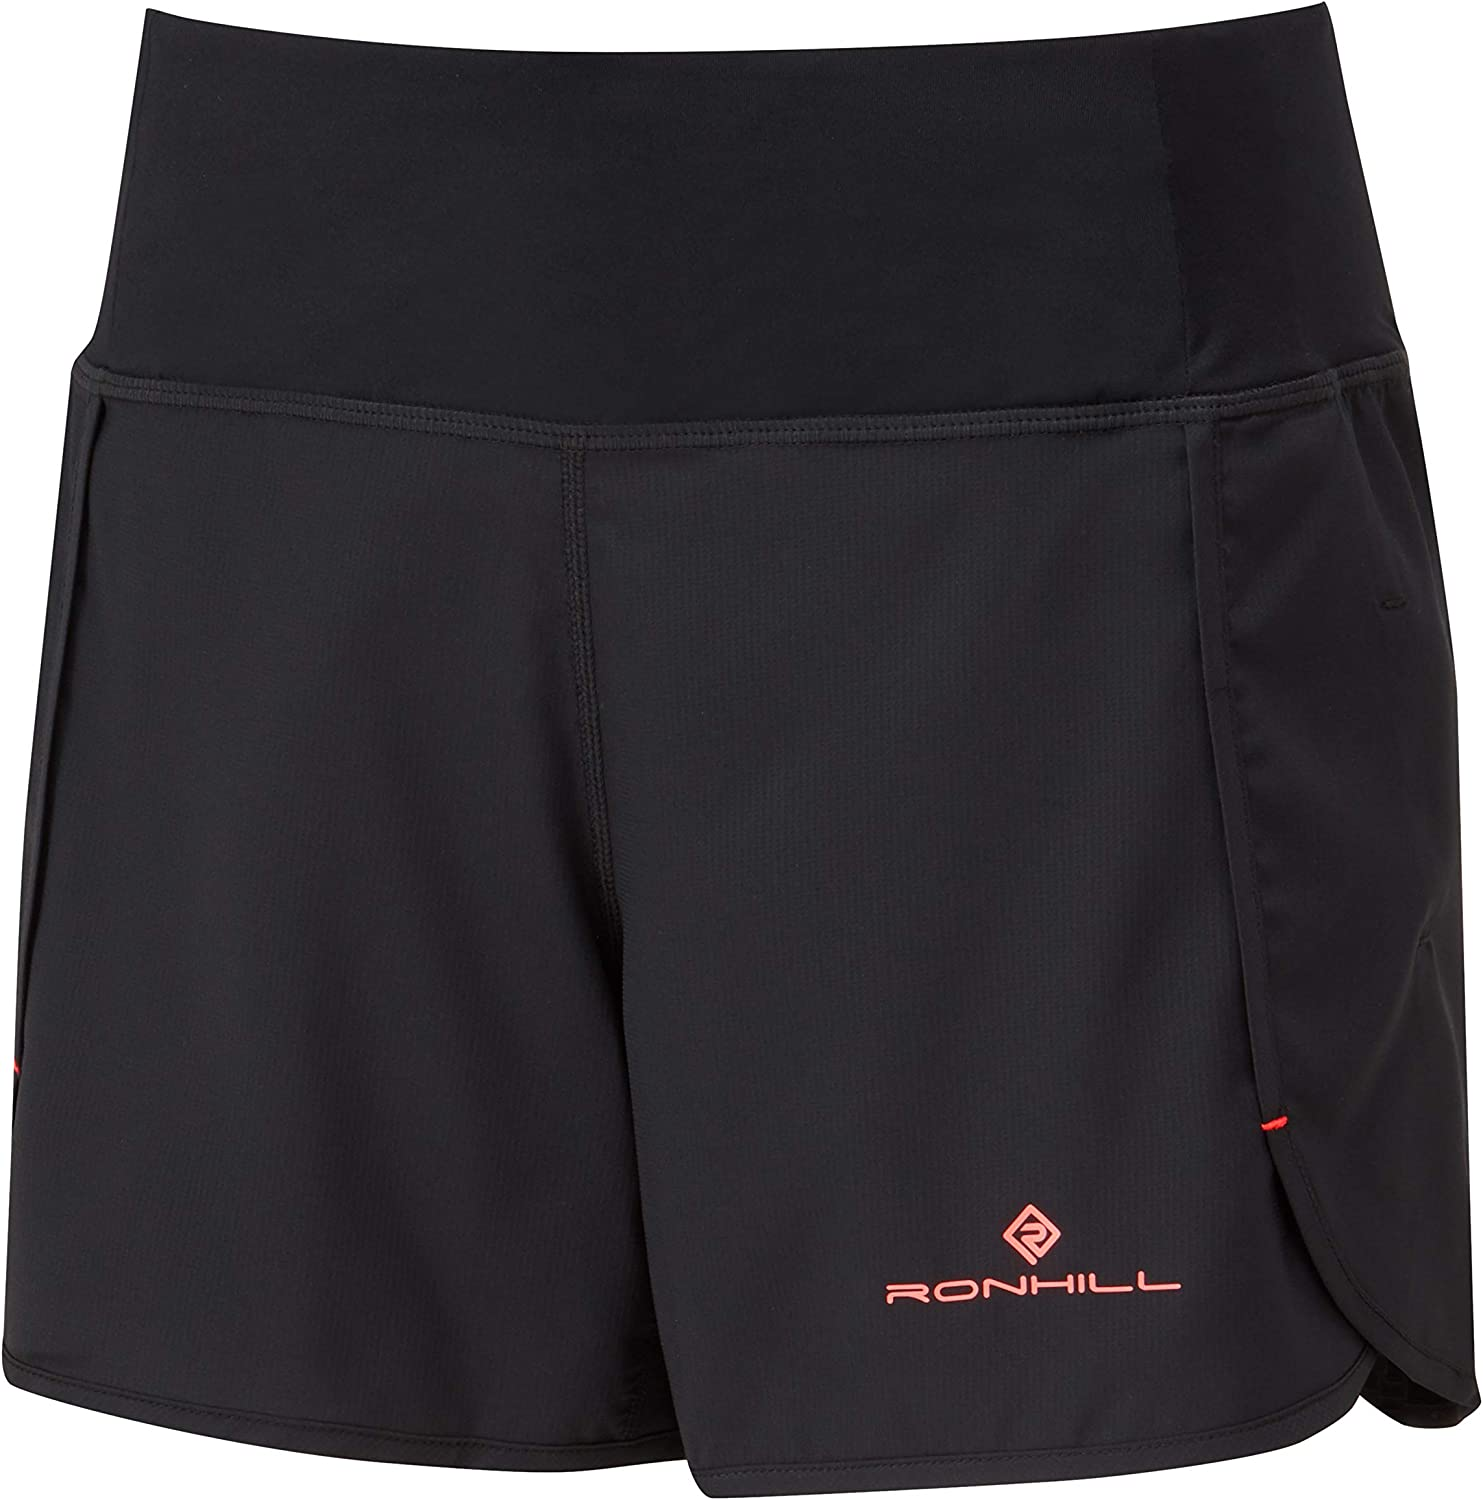 Ronhill Womens Stride Revive Shorts